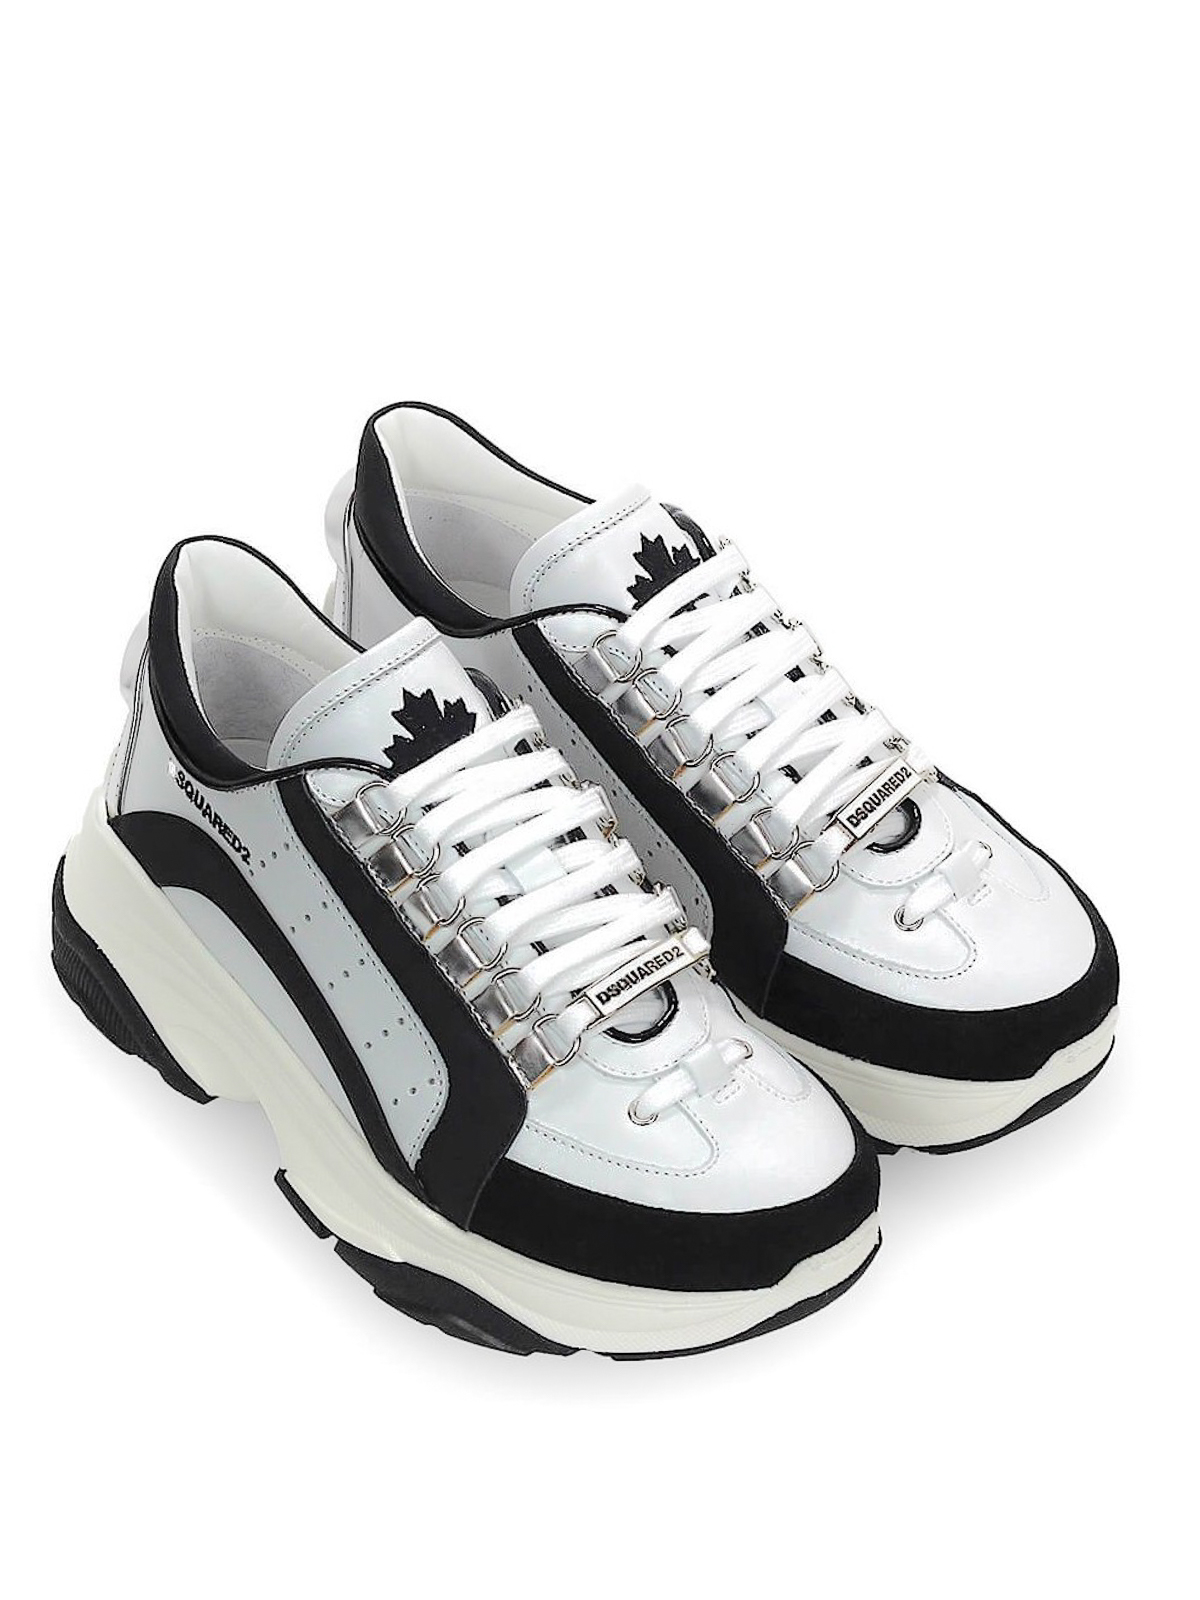 Dsquared2 - Bumpy 551 sneakers